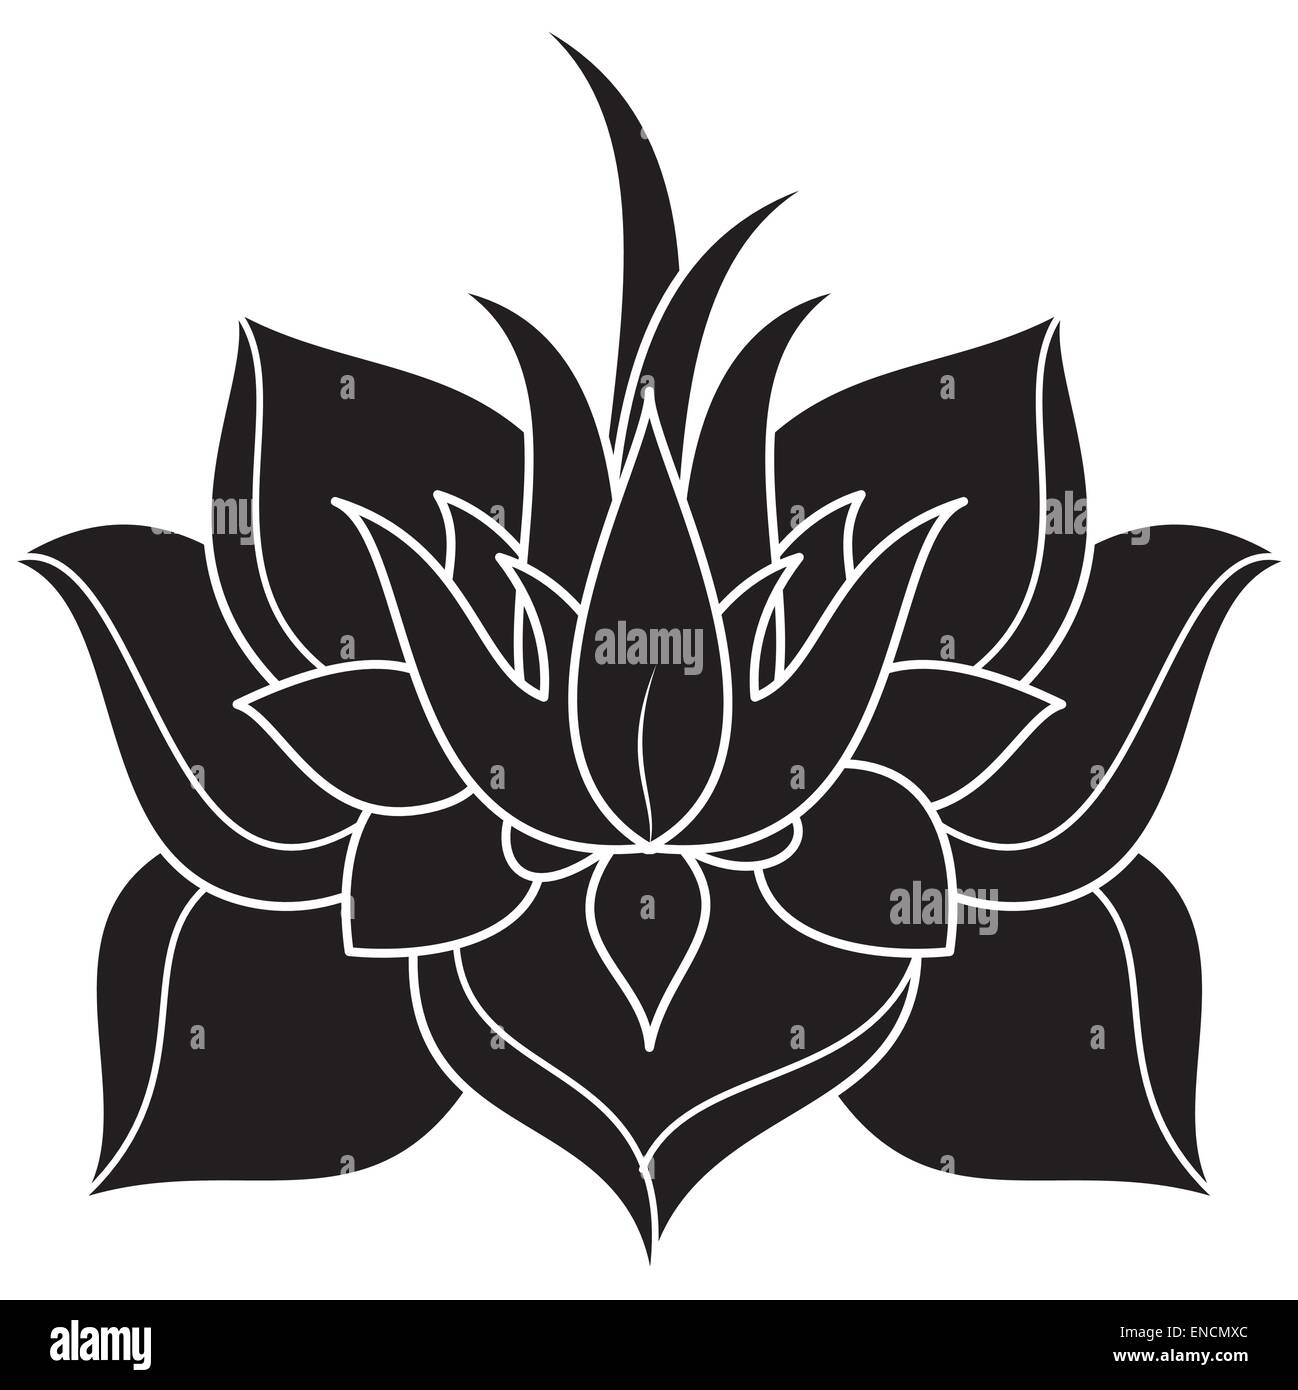 Lotus Flower Silhouette Stock Vector Art & Illustration Vector Image 82